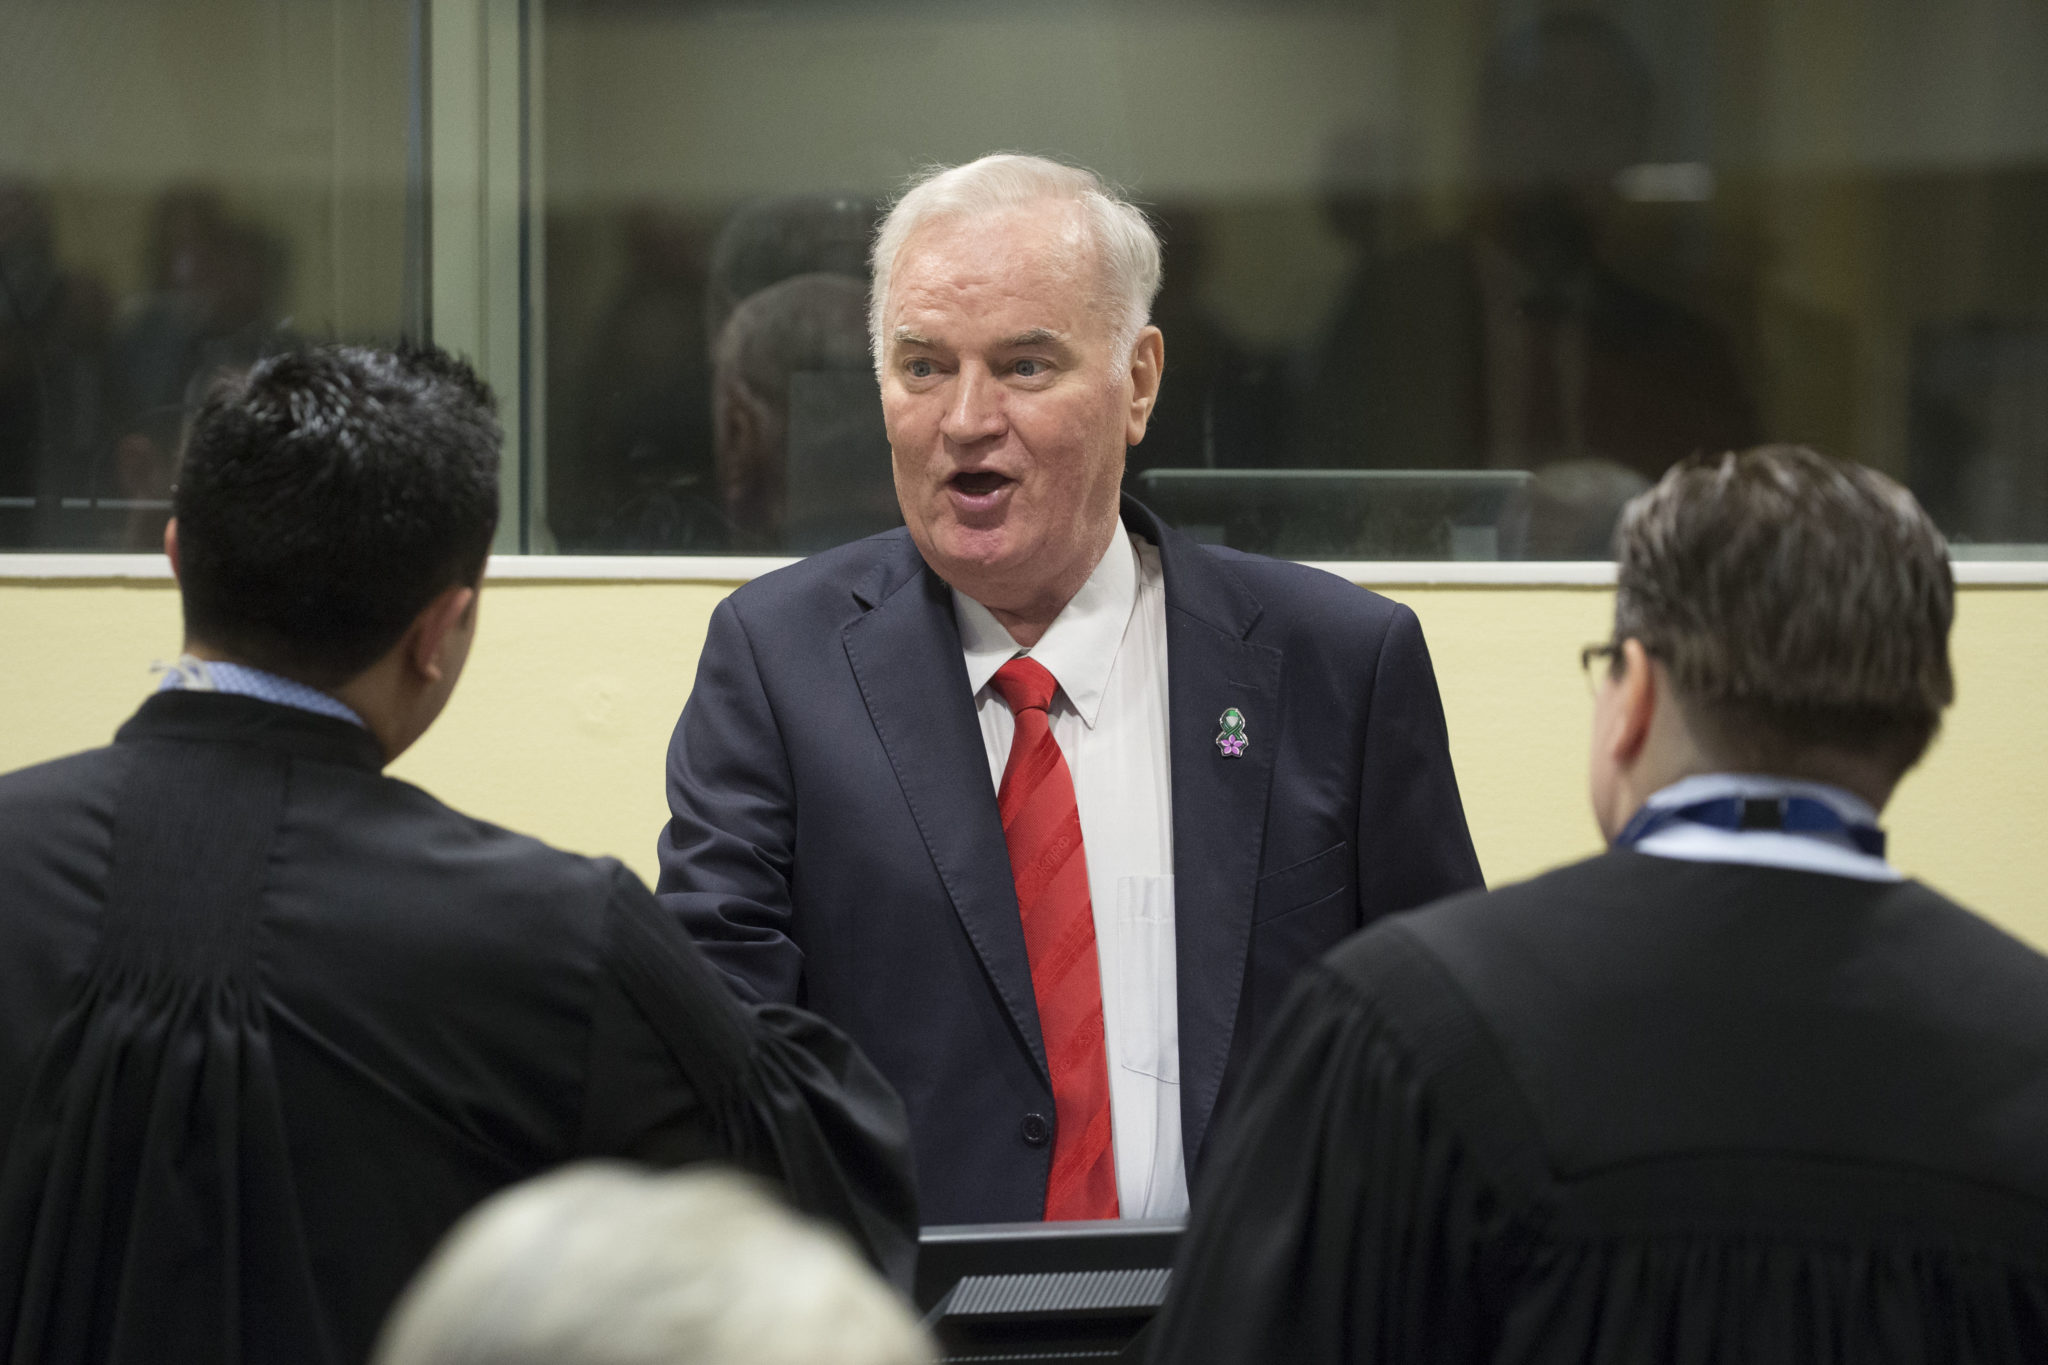 Bosnia and Herzegovina: Life sentence for Ratko Mladić is a landmark moment for justice